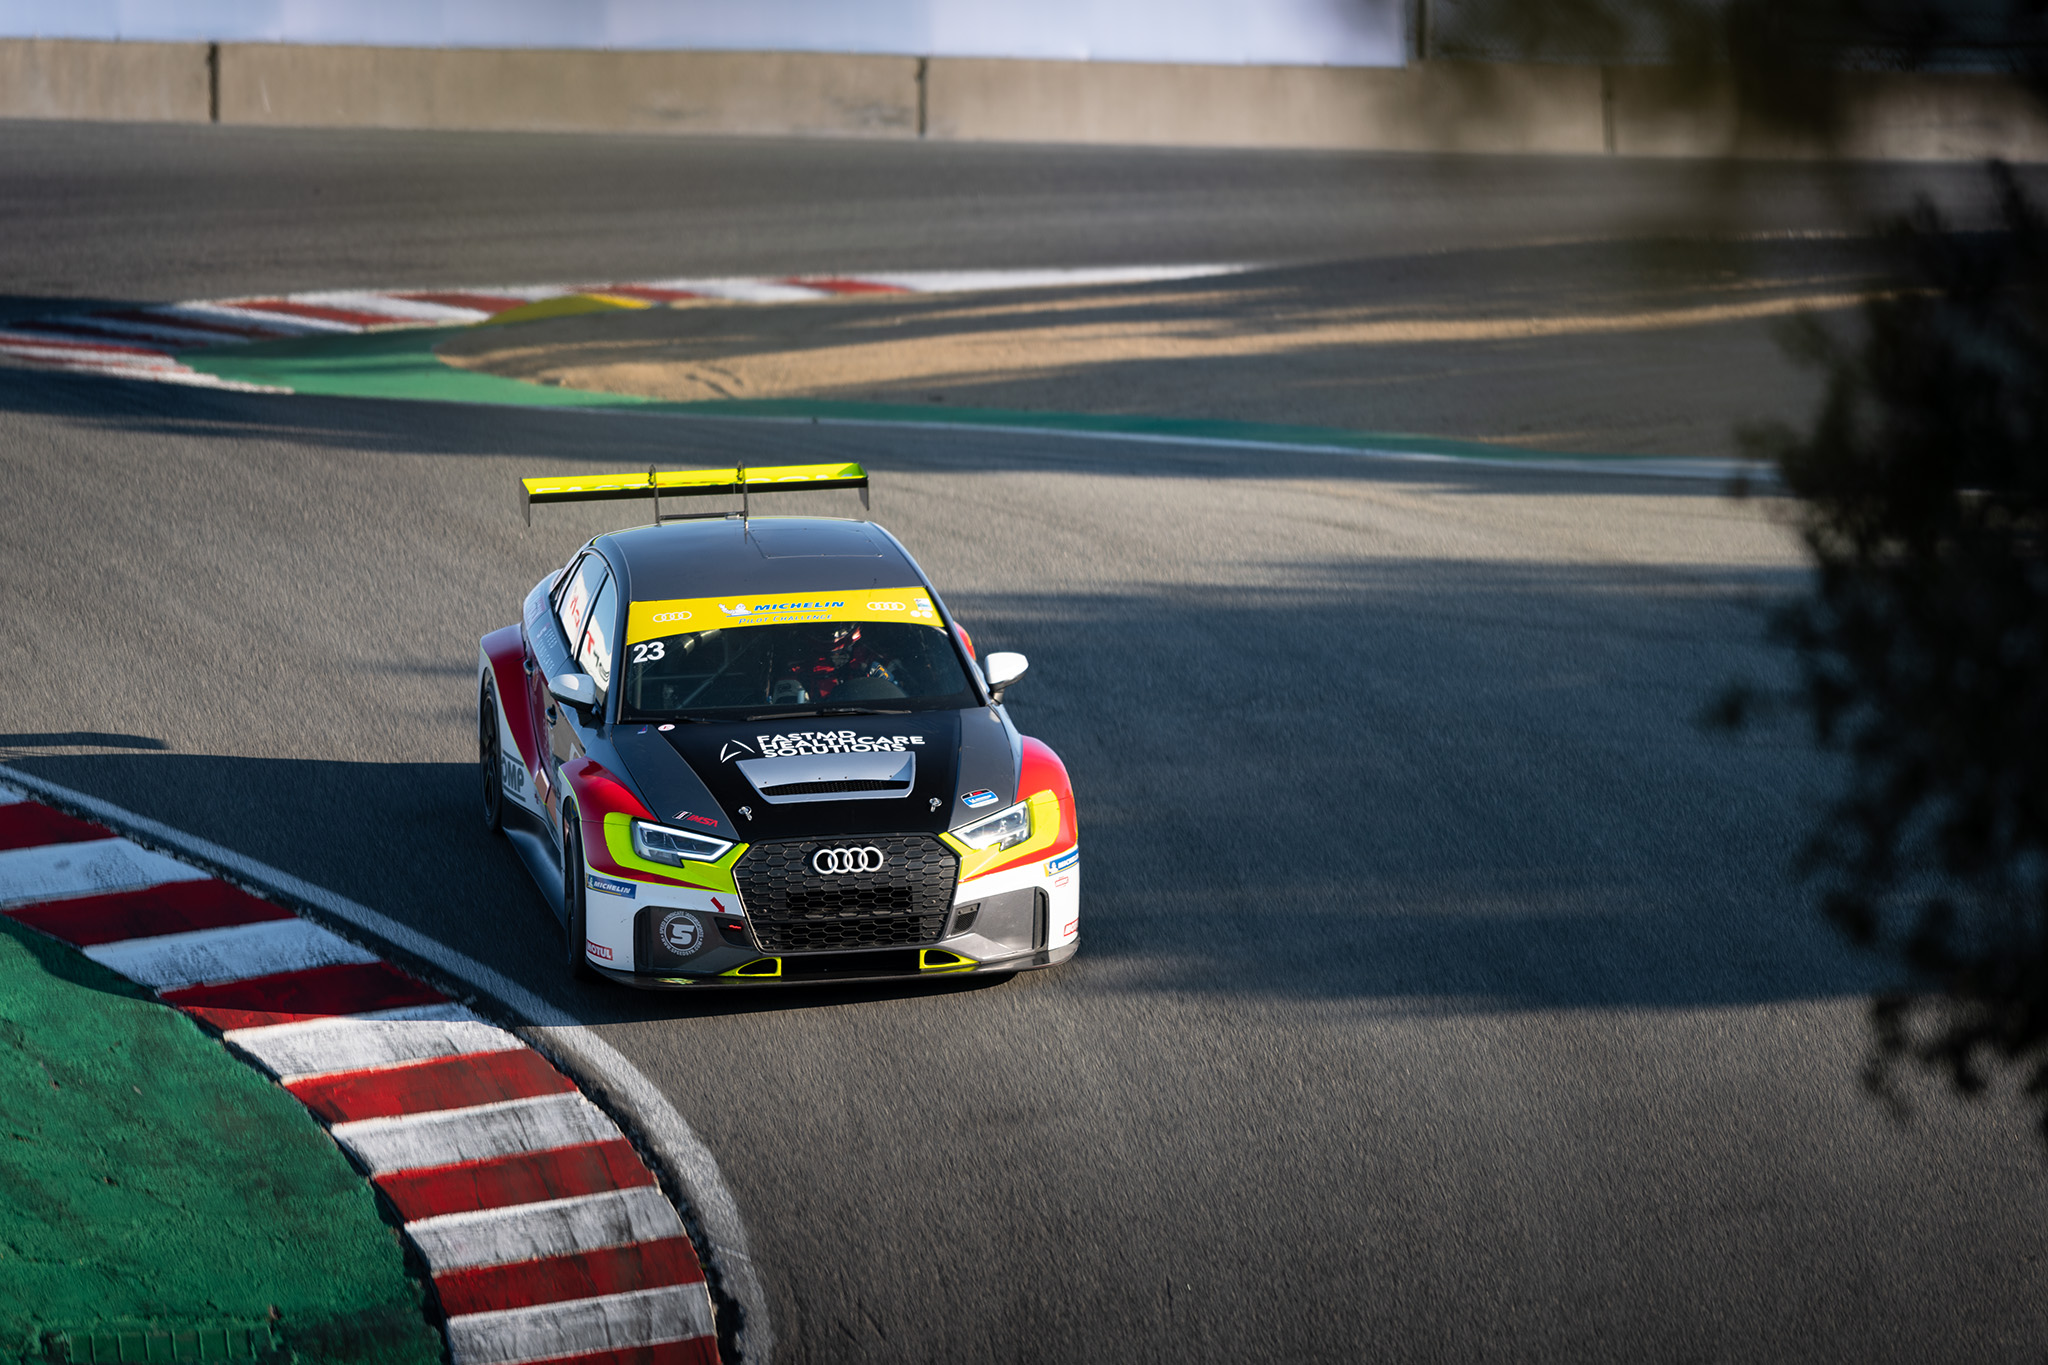 Driver Max Faulkner and the FastMD Audi RS3 LMS TCR barreling down the Corkscrew at IMSA Laguna Seca, motorsports photography by Luke Munnell